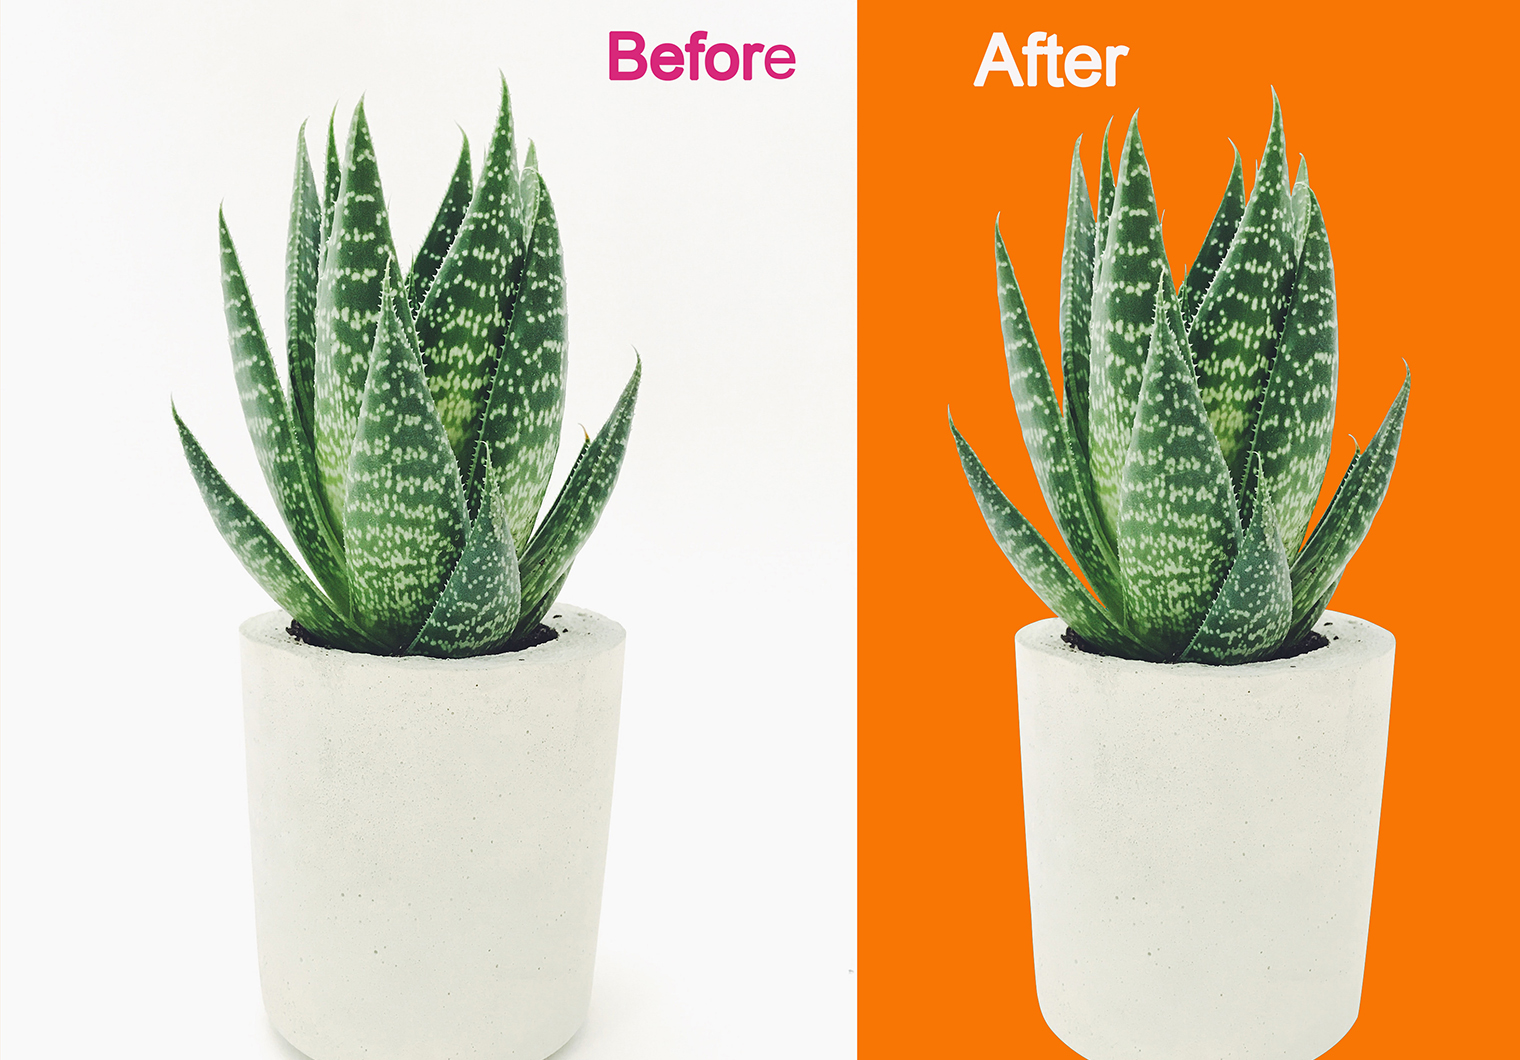 I will do 5 image background remove, clipping path and image editing